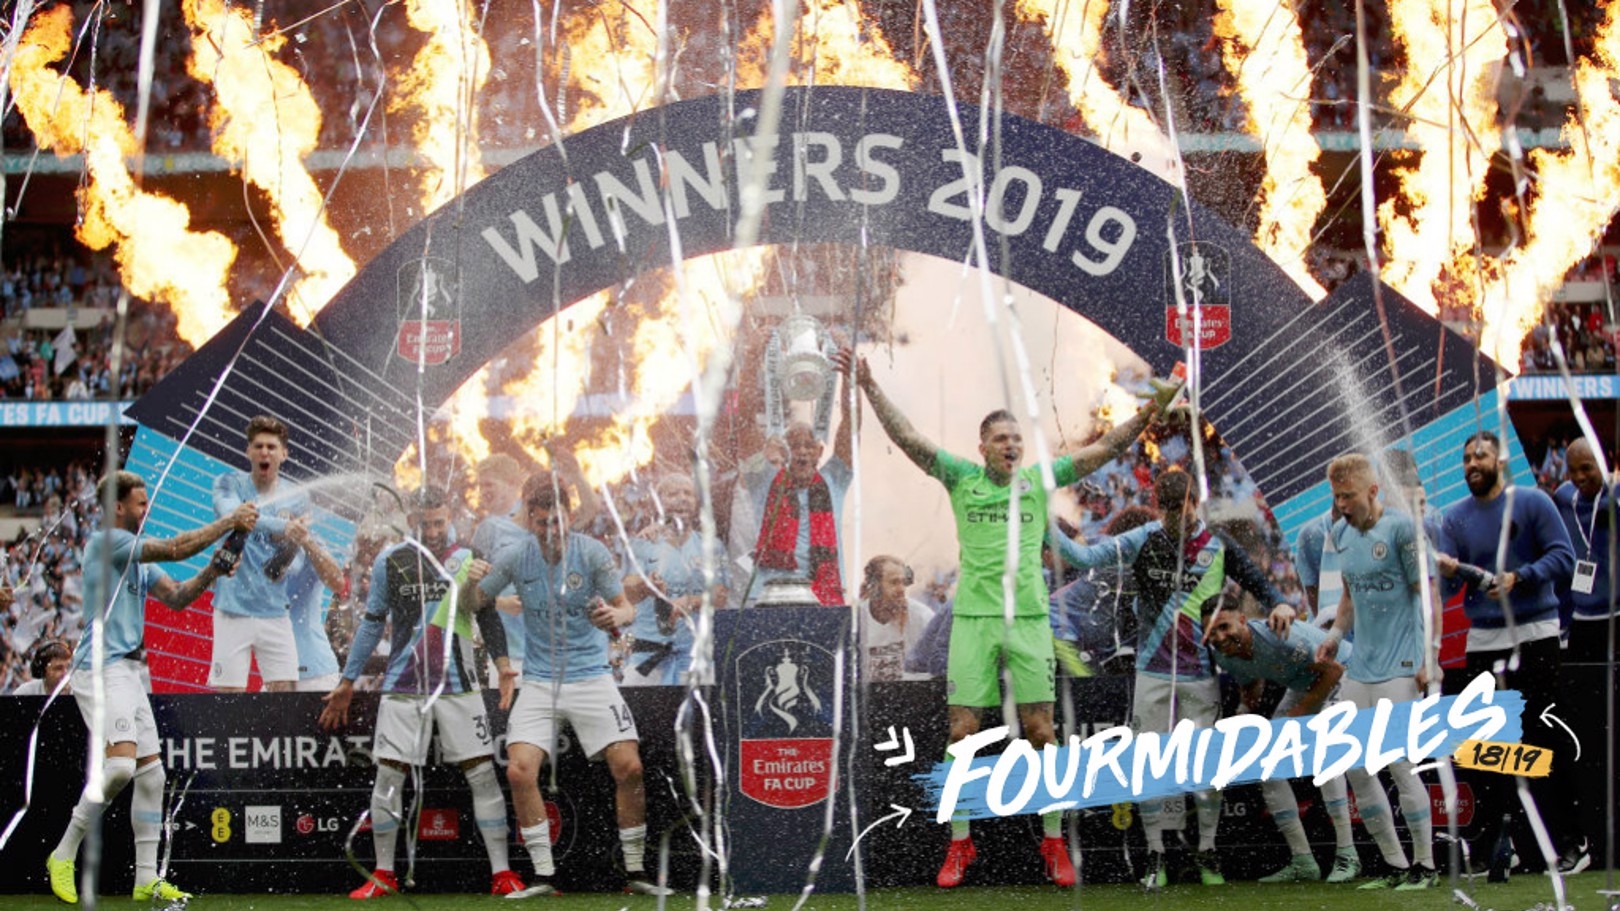 FOURMIDABLES: City have won all four major English trophies in one season.